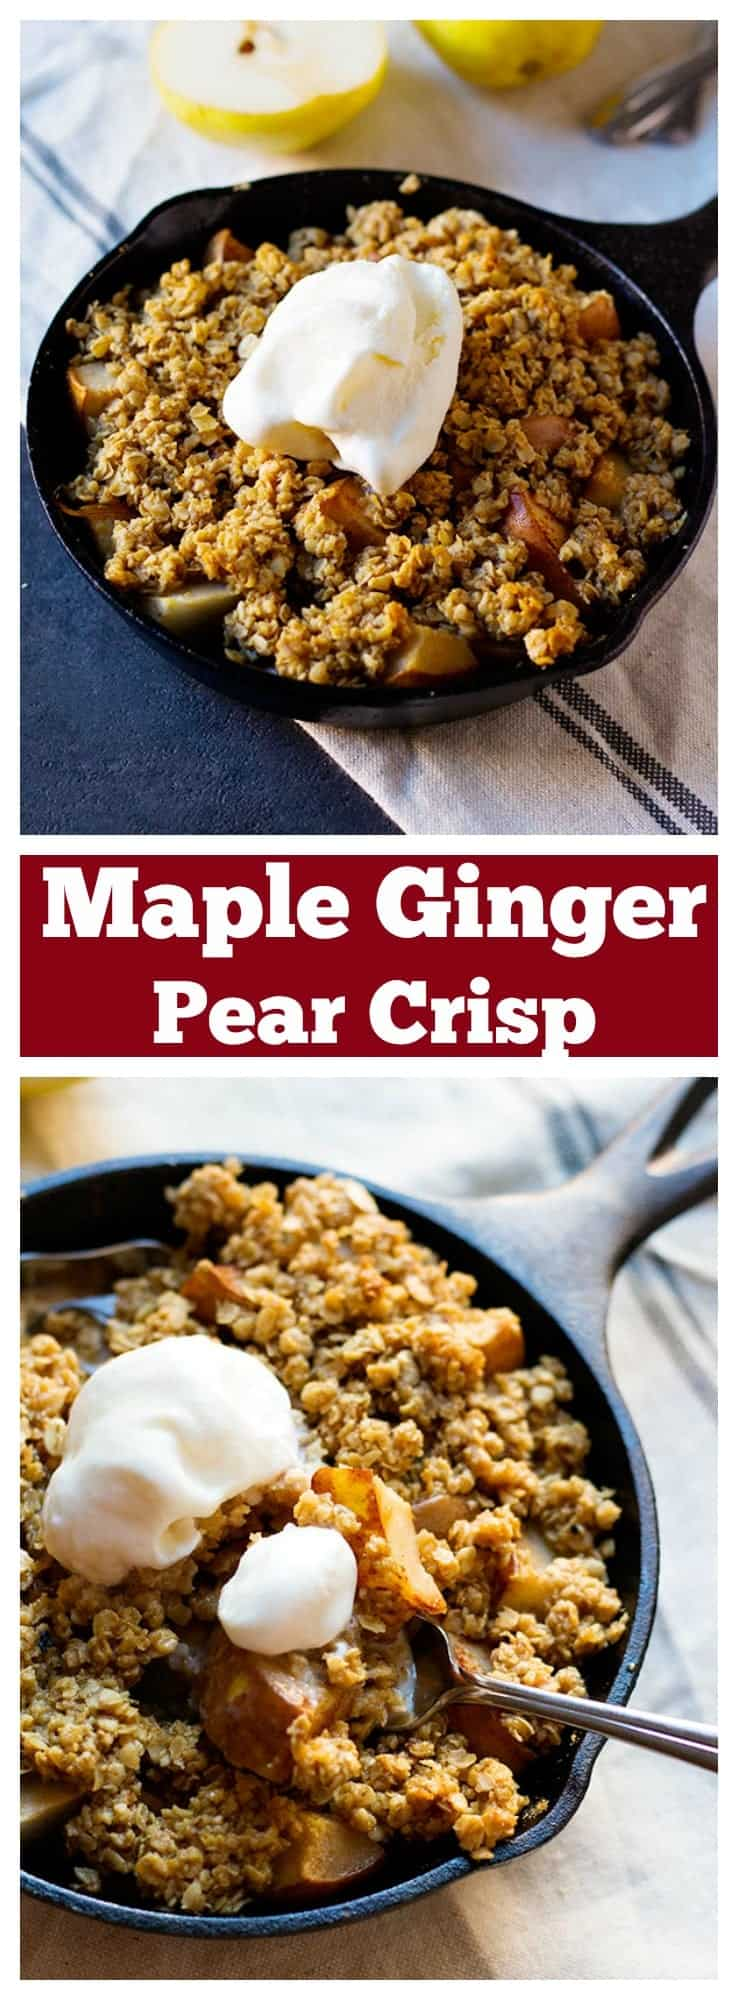 Treat yourself to this easy and delicious maple ginger pear crisp with an amazing combination of flavors. Make it a double win by topping it with a scoop of vanilla ice cream!